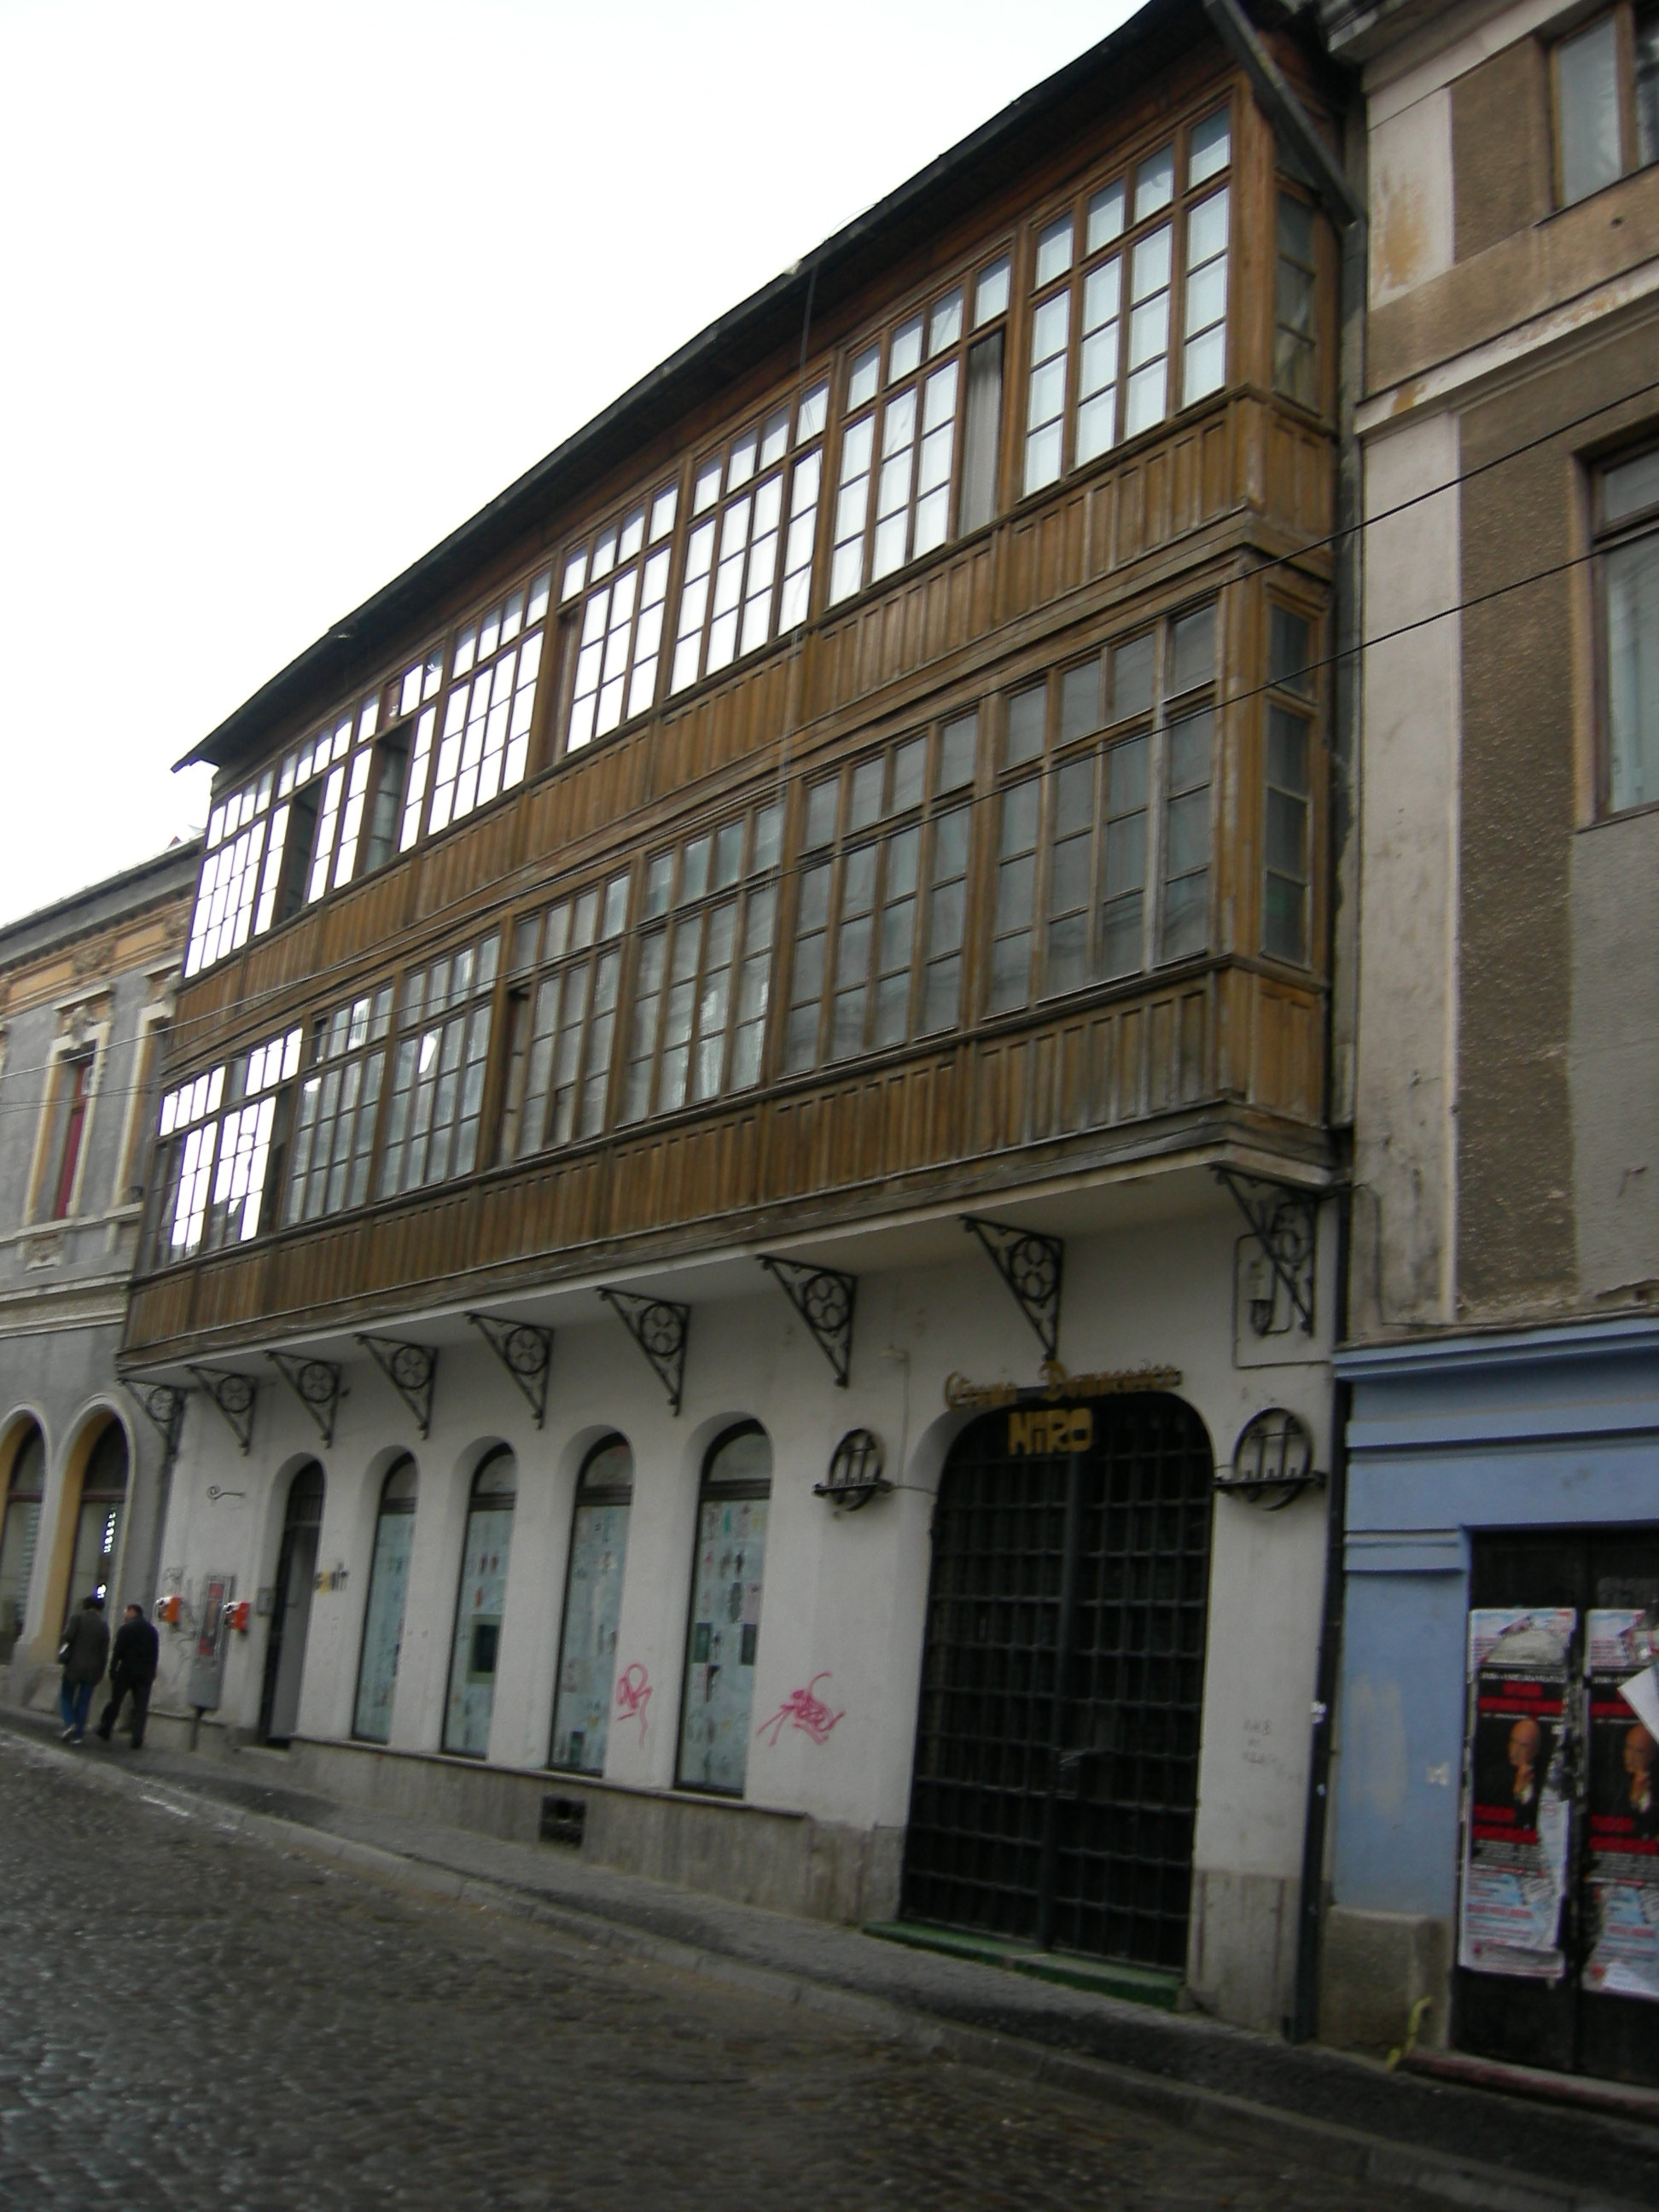 One of the oldest curtain-walls in the world, in Bucharest